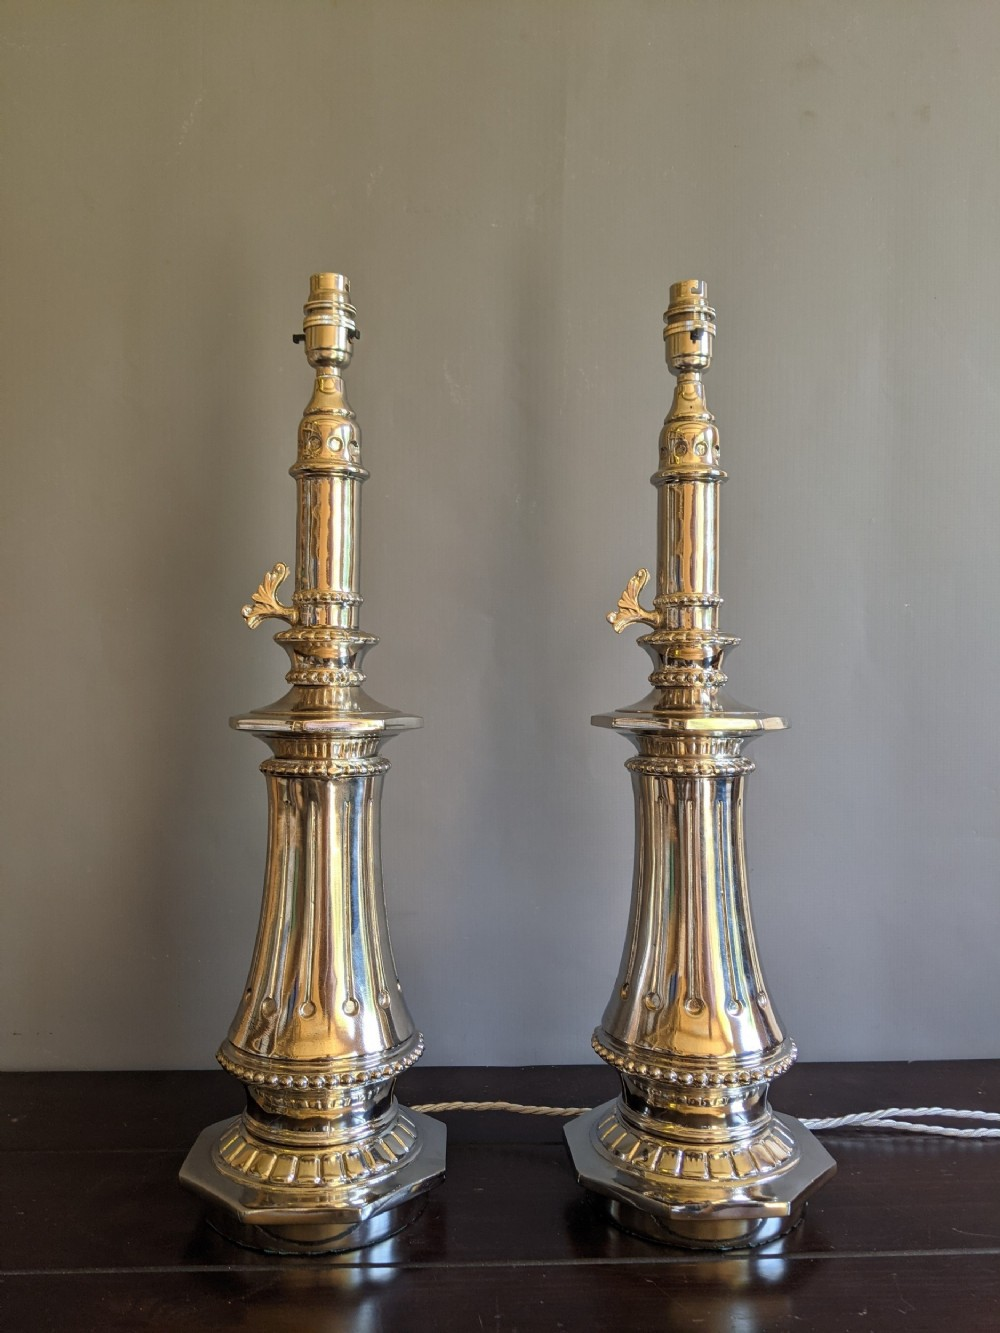 exquisite pair of 1920s nickel plated lamps